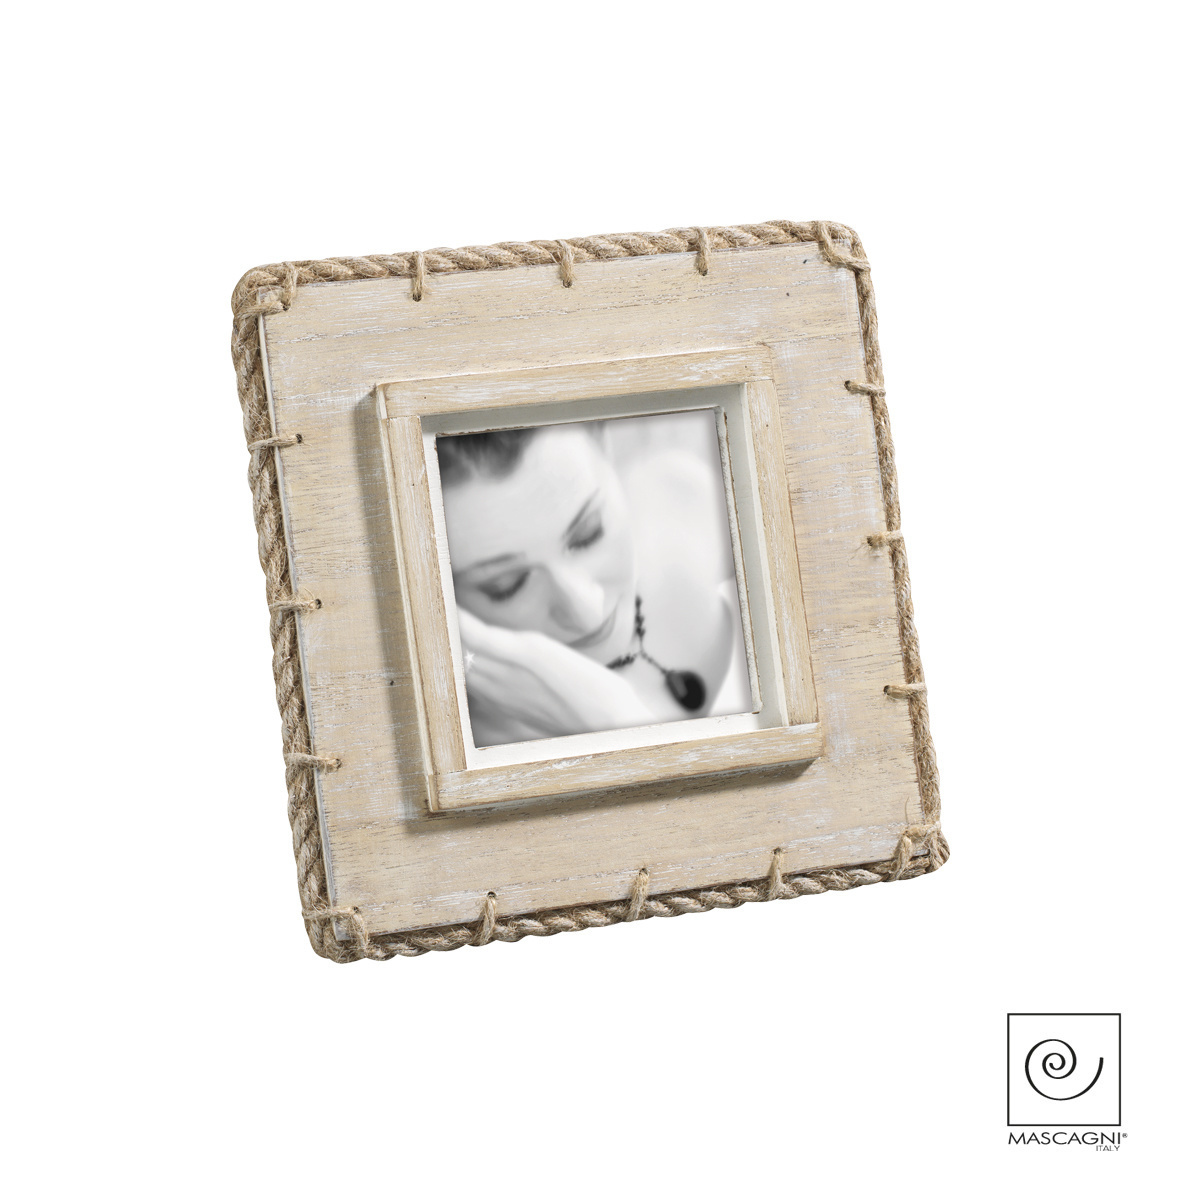 Art Mascagni A762 PHOTO FRAME 10X10 - COL. NATURAL